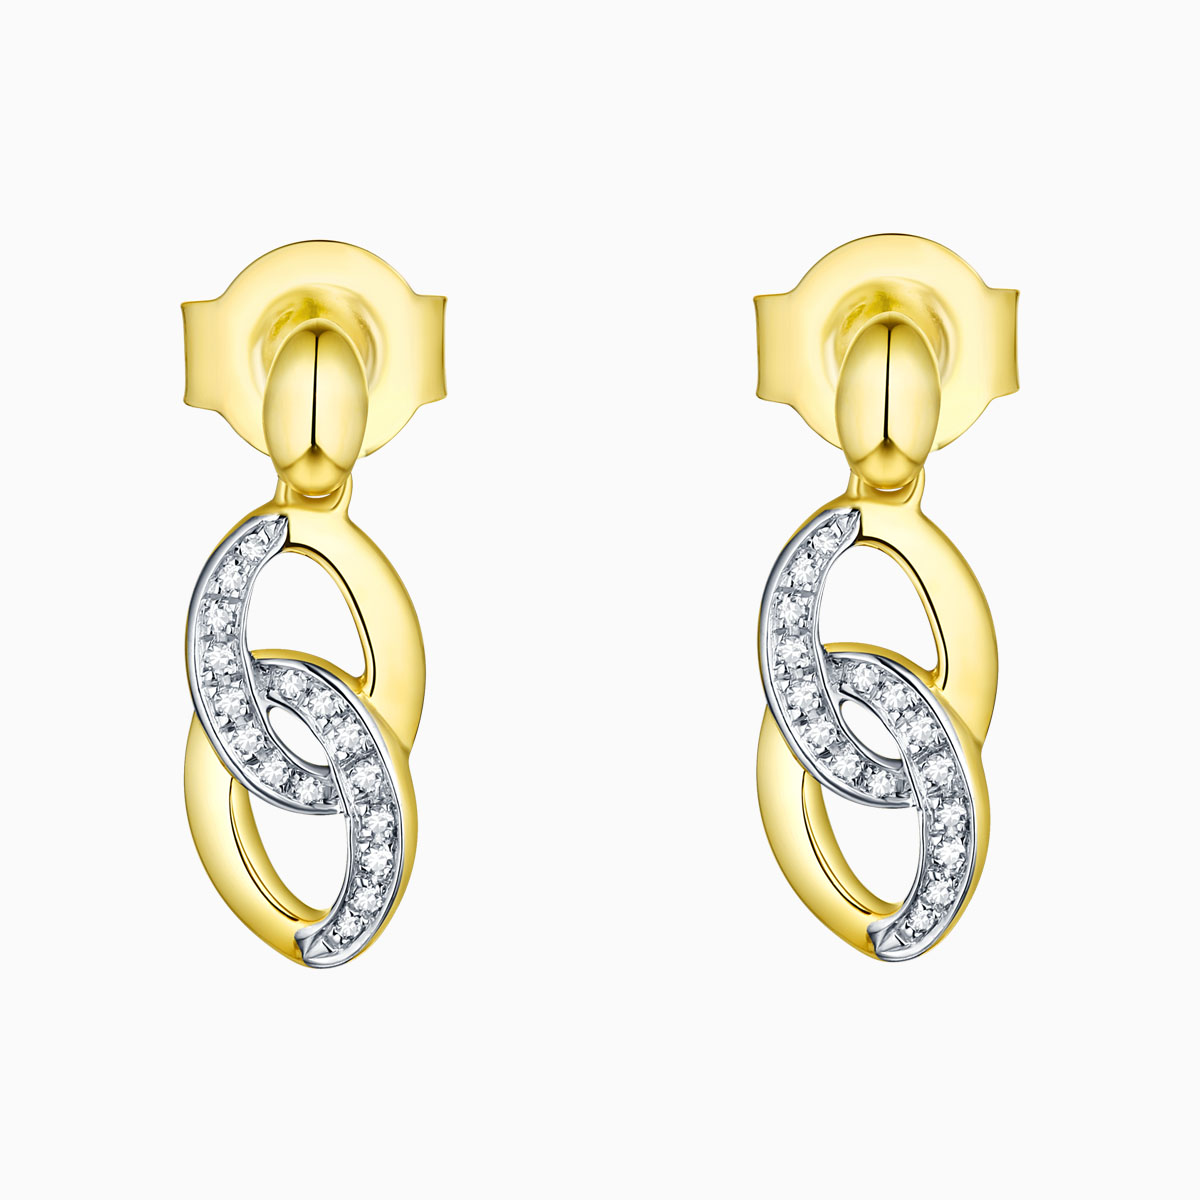 E13630WHT- 14K Yellow Gold Diamond Earrings, 0.05 TCW